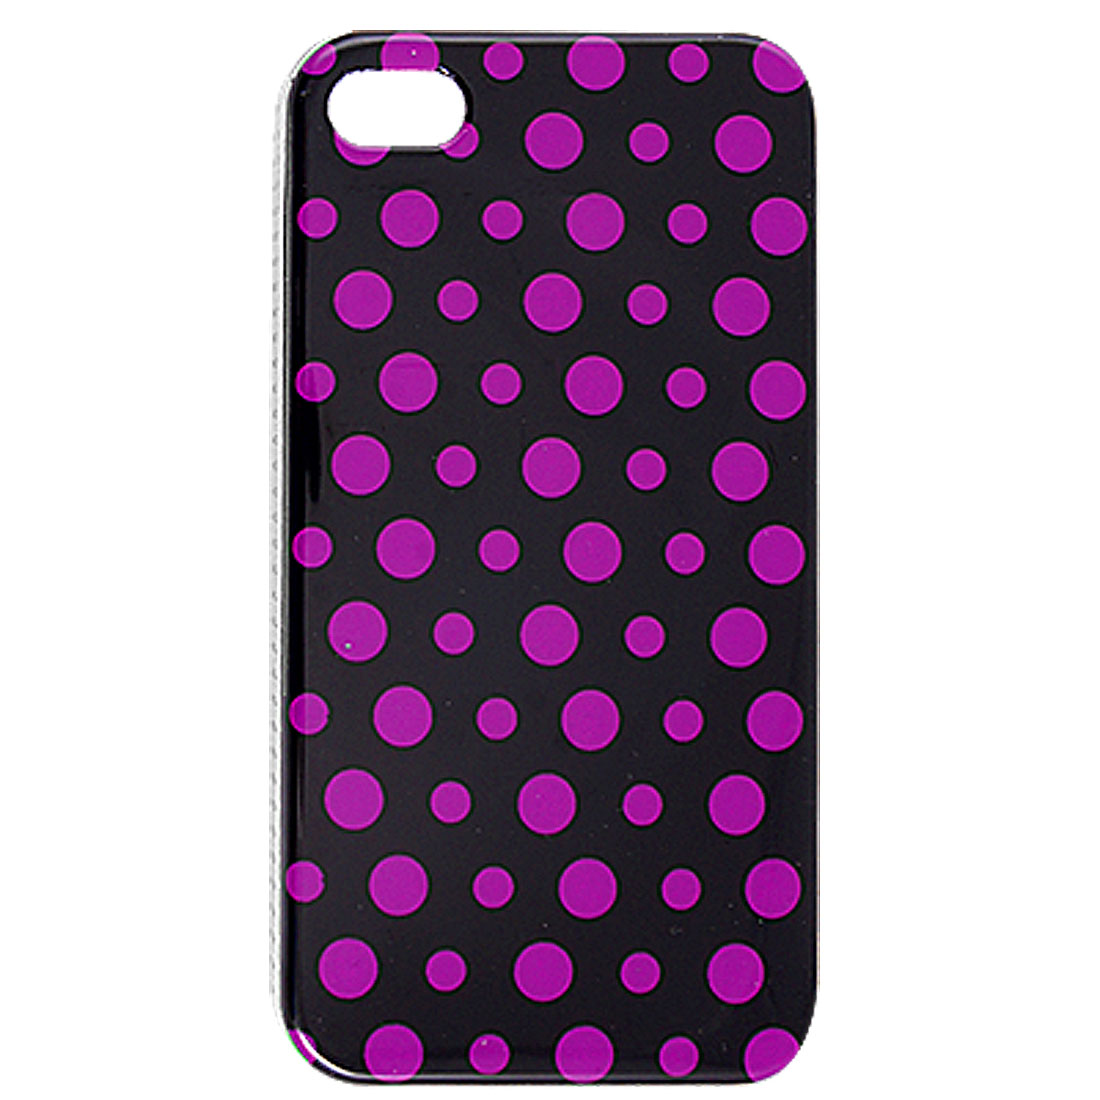 IMD Fuchsia Dots Pattern Hard Plastic Back Shell Black for iPhone 4 4G 4S